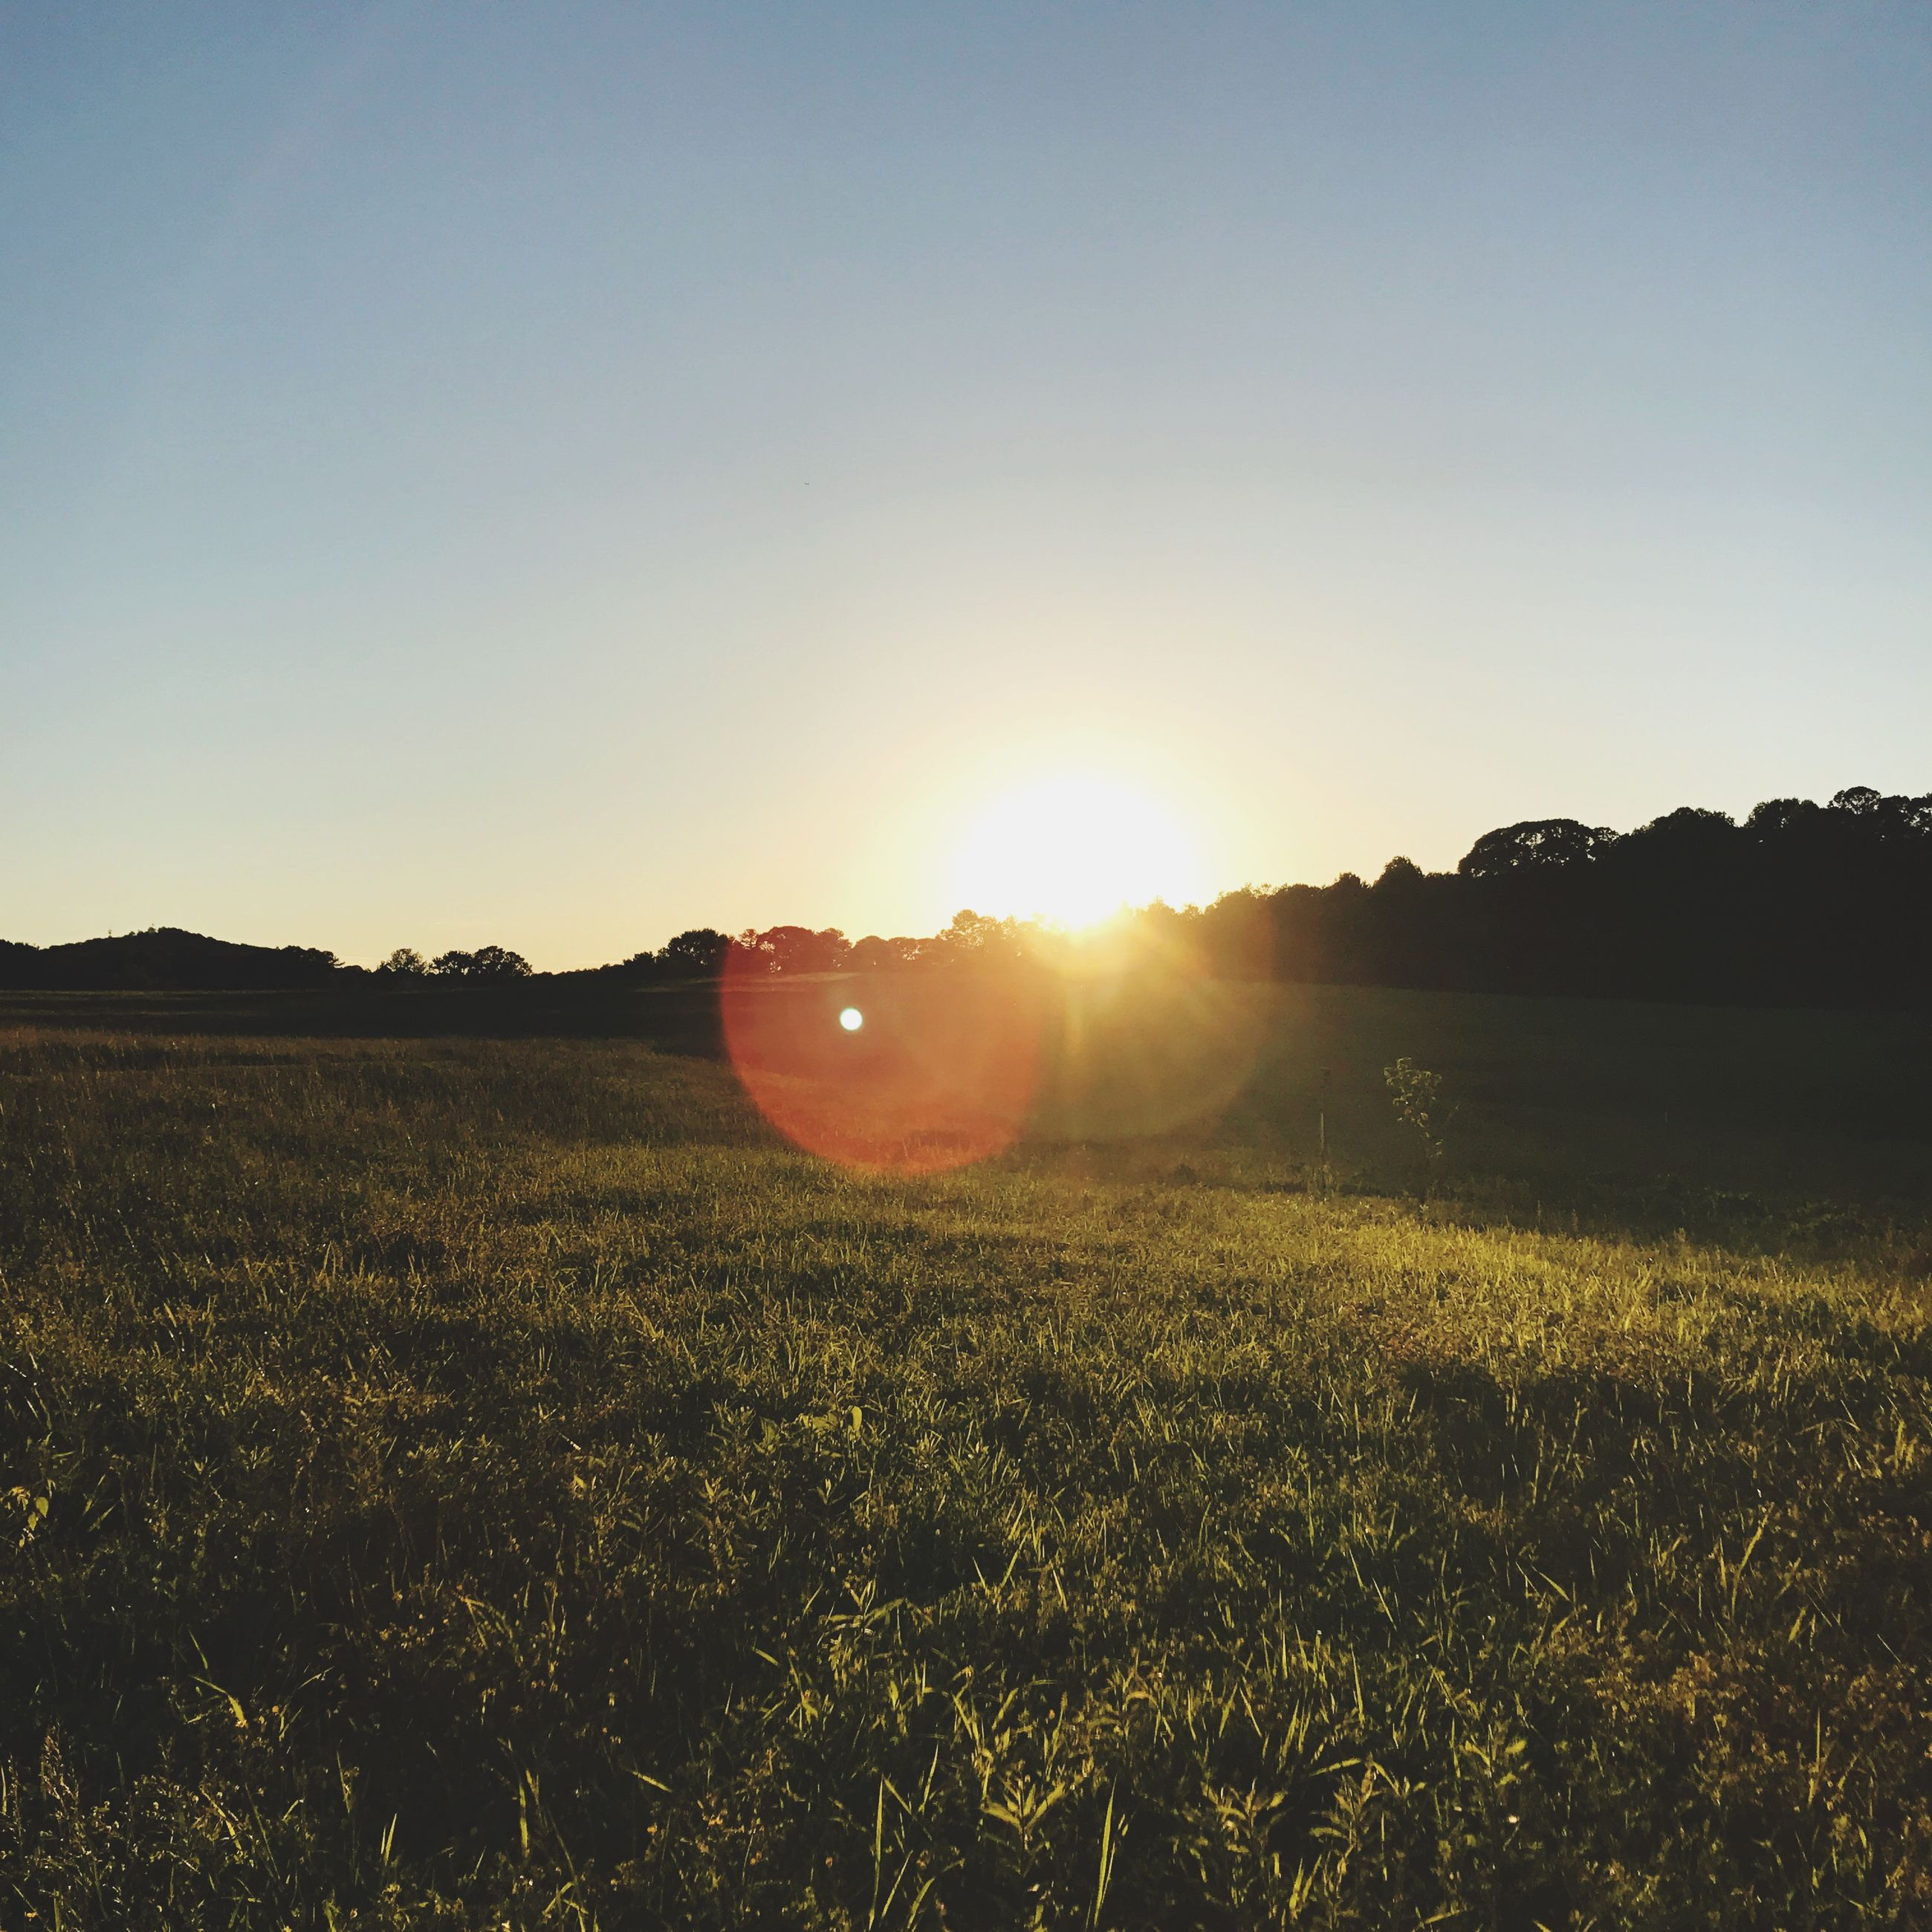 sunset, sun, sunlight, lens flare, field, nature, tranquil scene, beauty in nature, scenics, sunbeam, tranquility, no people, outdoors, landscape, grass, clear sky, silhouette, tree, sky, growth, day